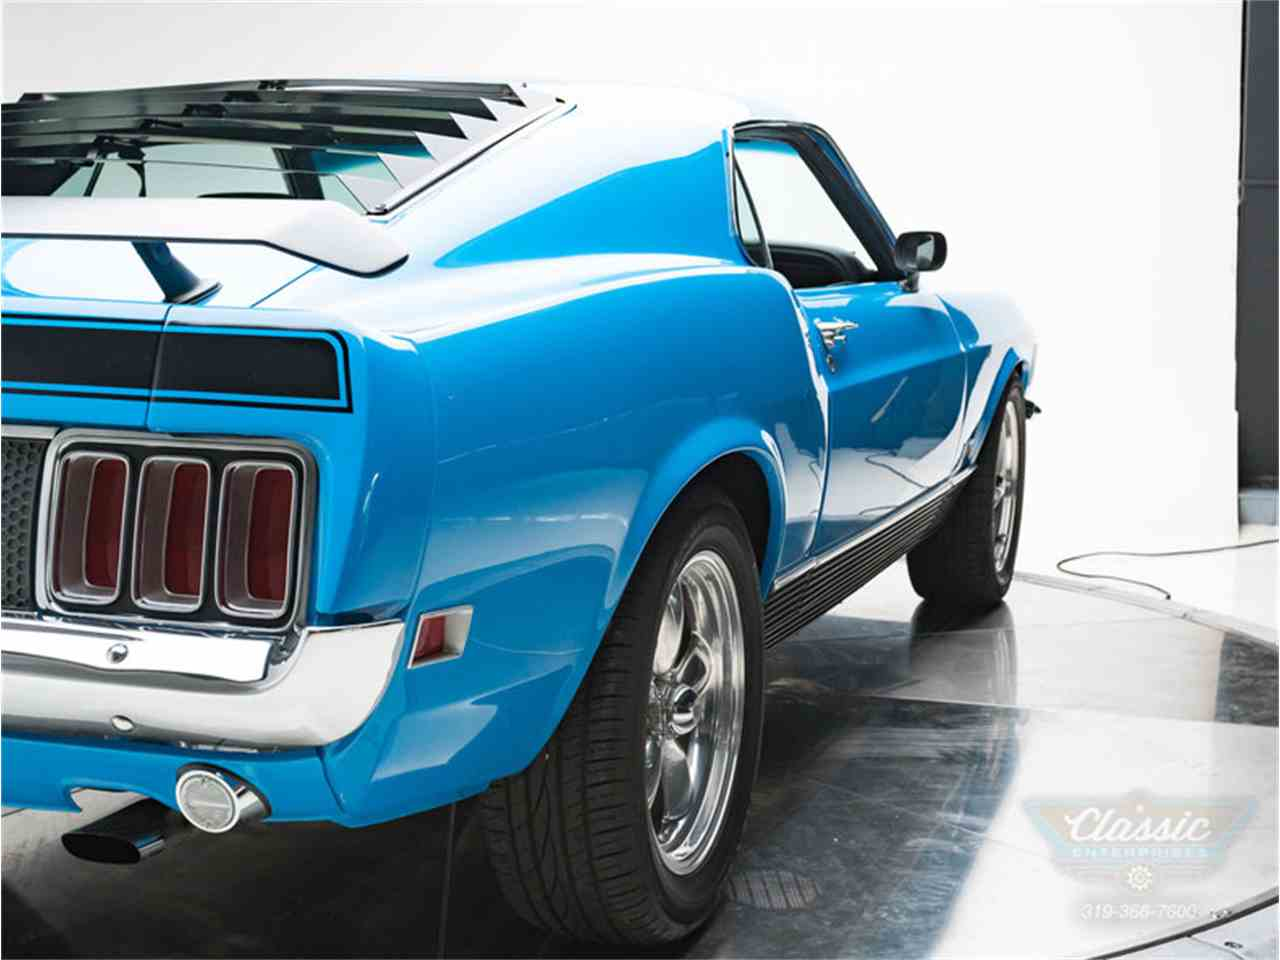 Large Picture of Classic '70 Ford Mustang Mach 1 located in Iowa - $42,950.00 Offered by Classic Enterprises - LWJF